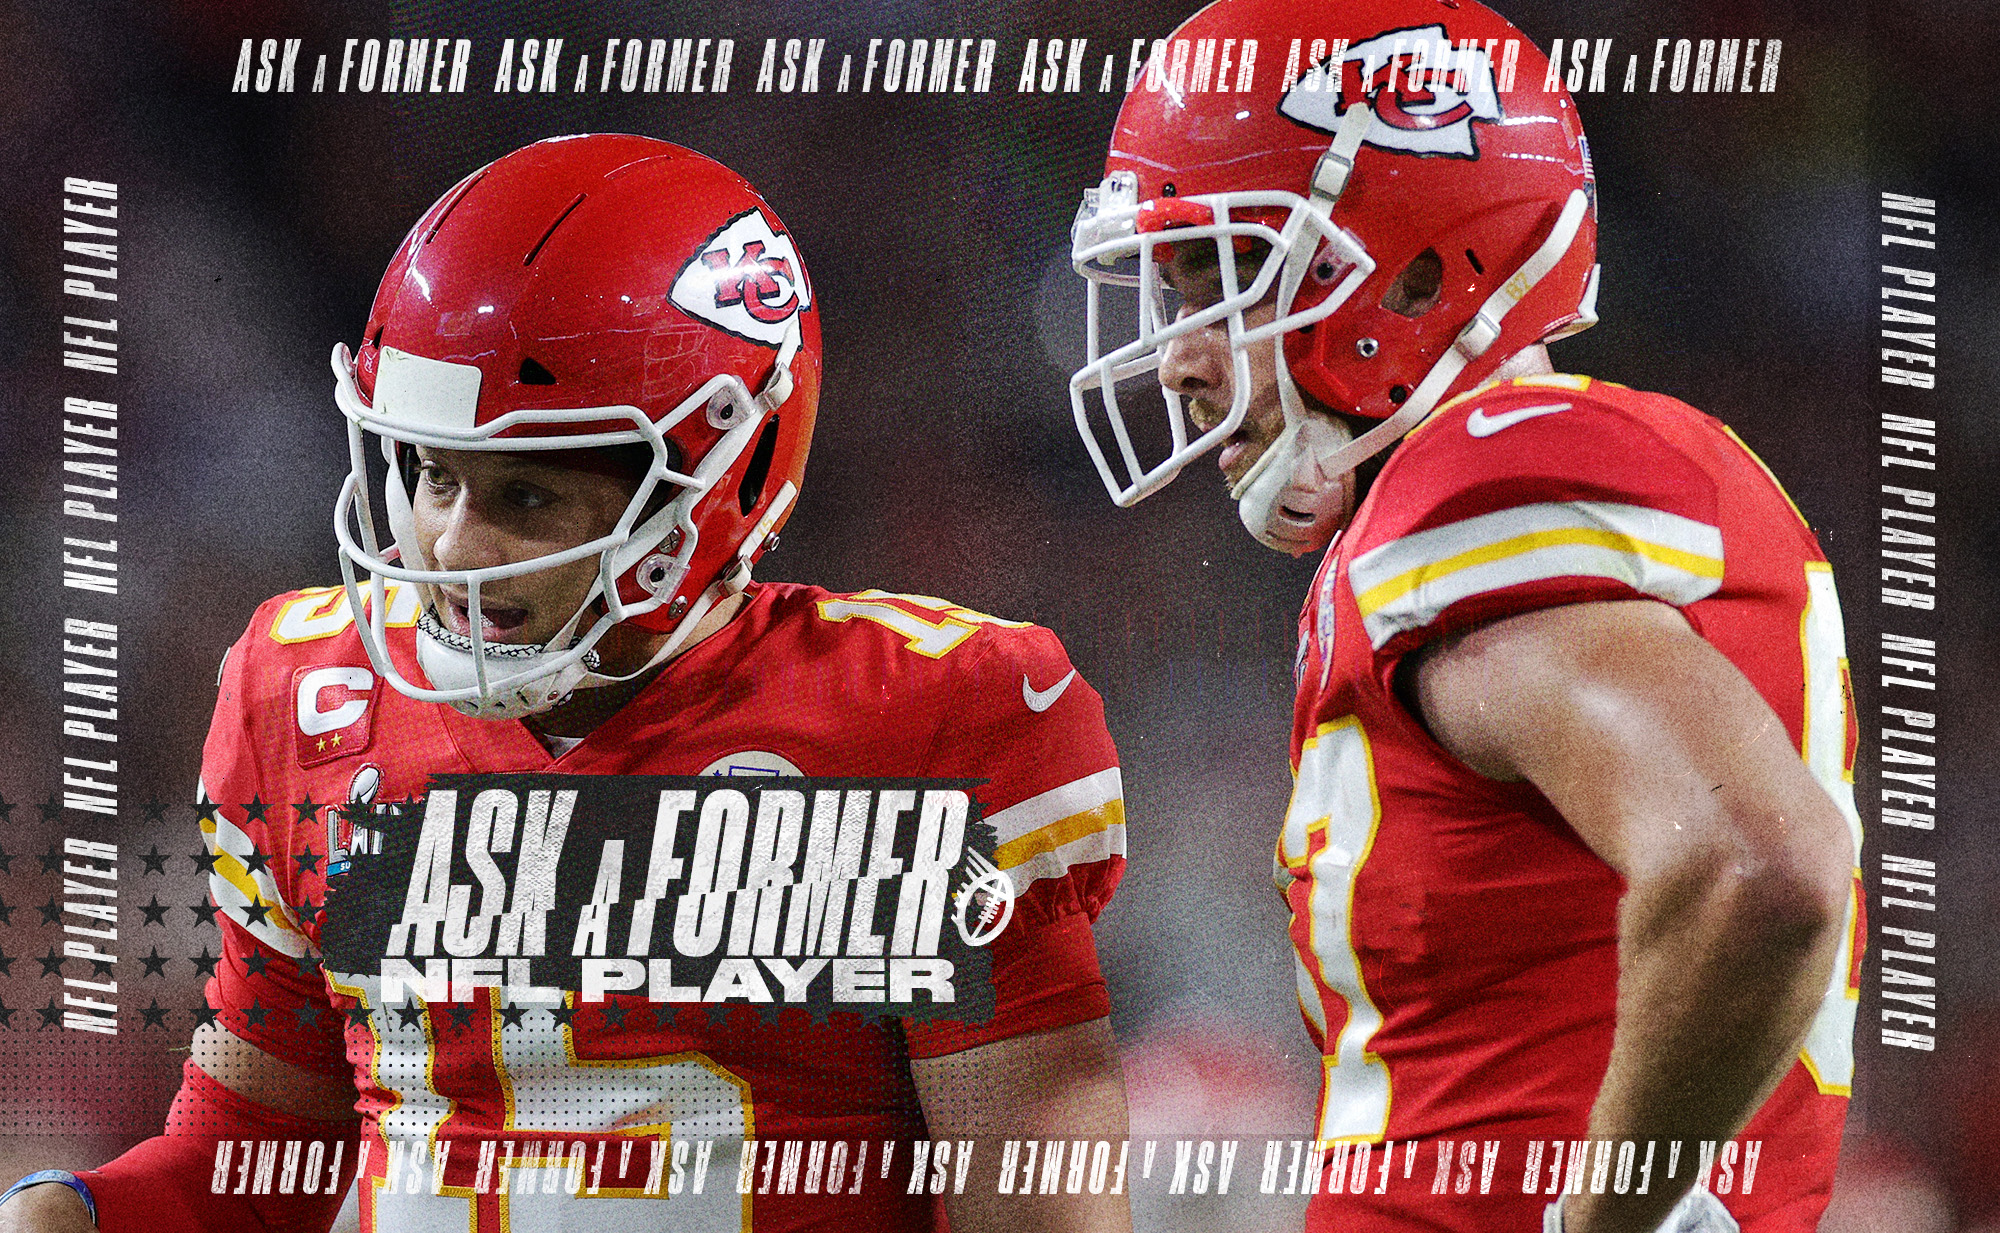 """A photo of Chiefs QB Patrick Mahomes side by side with TE Travis Kelce, superimposed on a black background with """"ask a former NFL player"""" in white letters"""